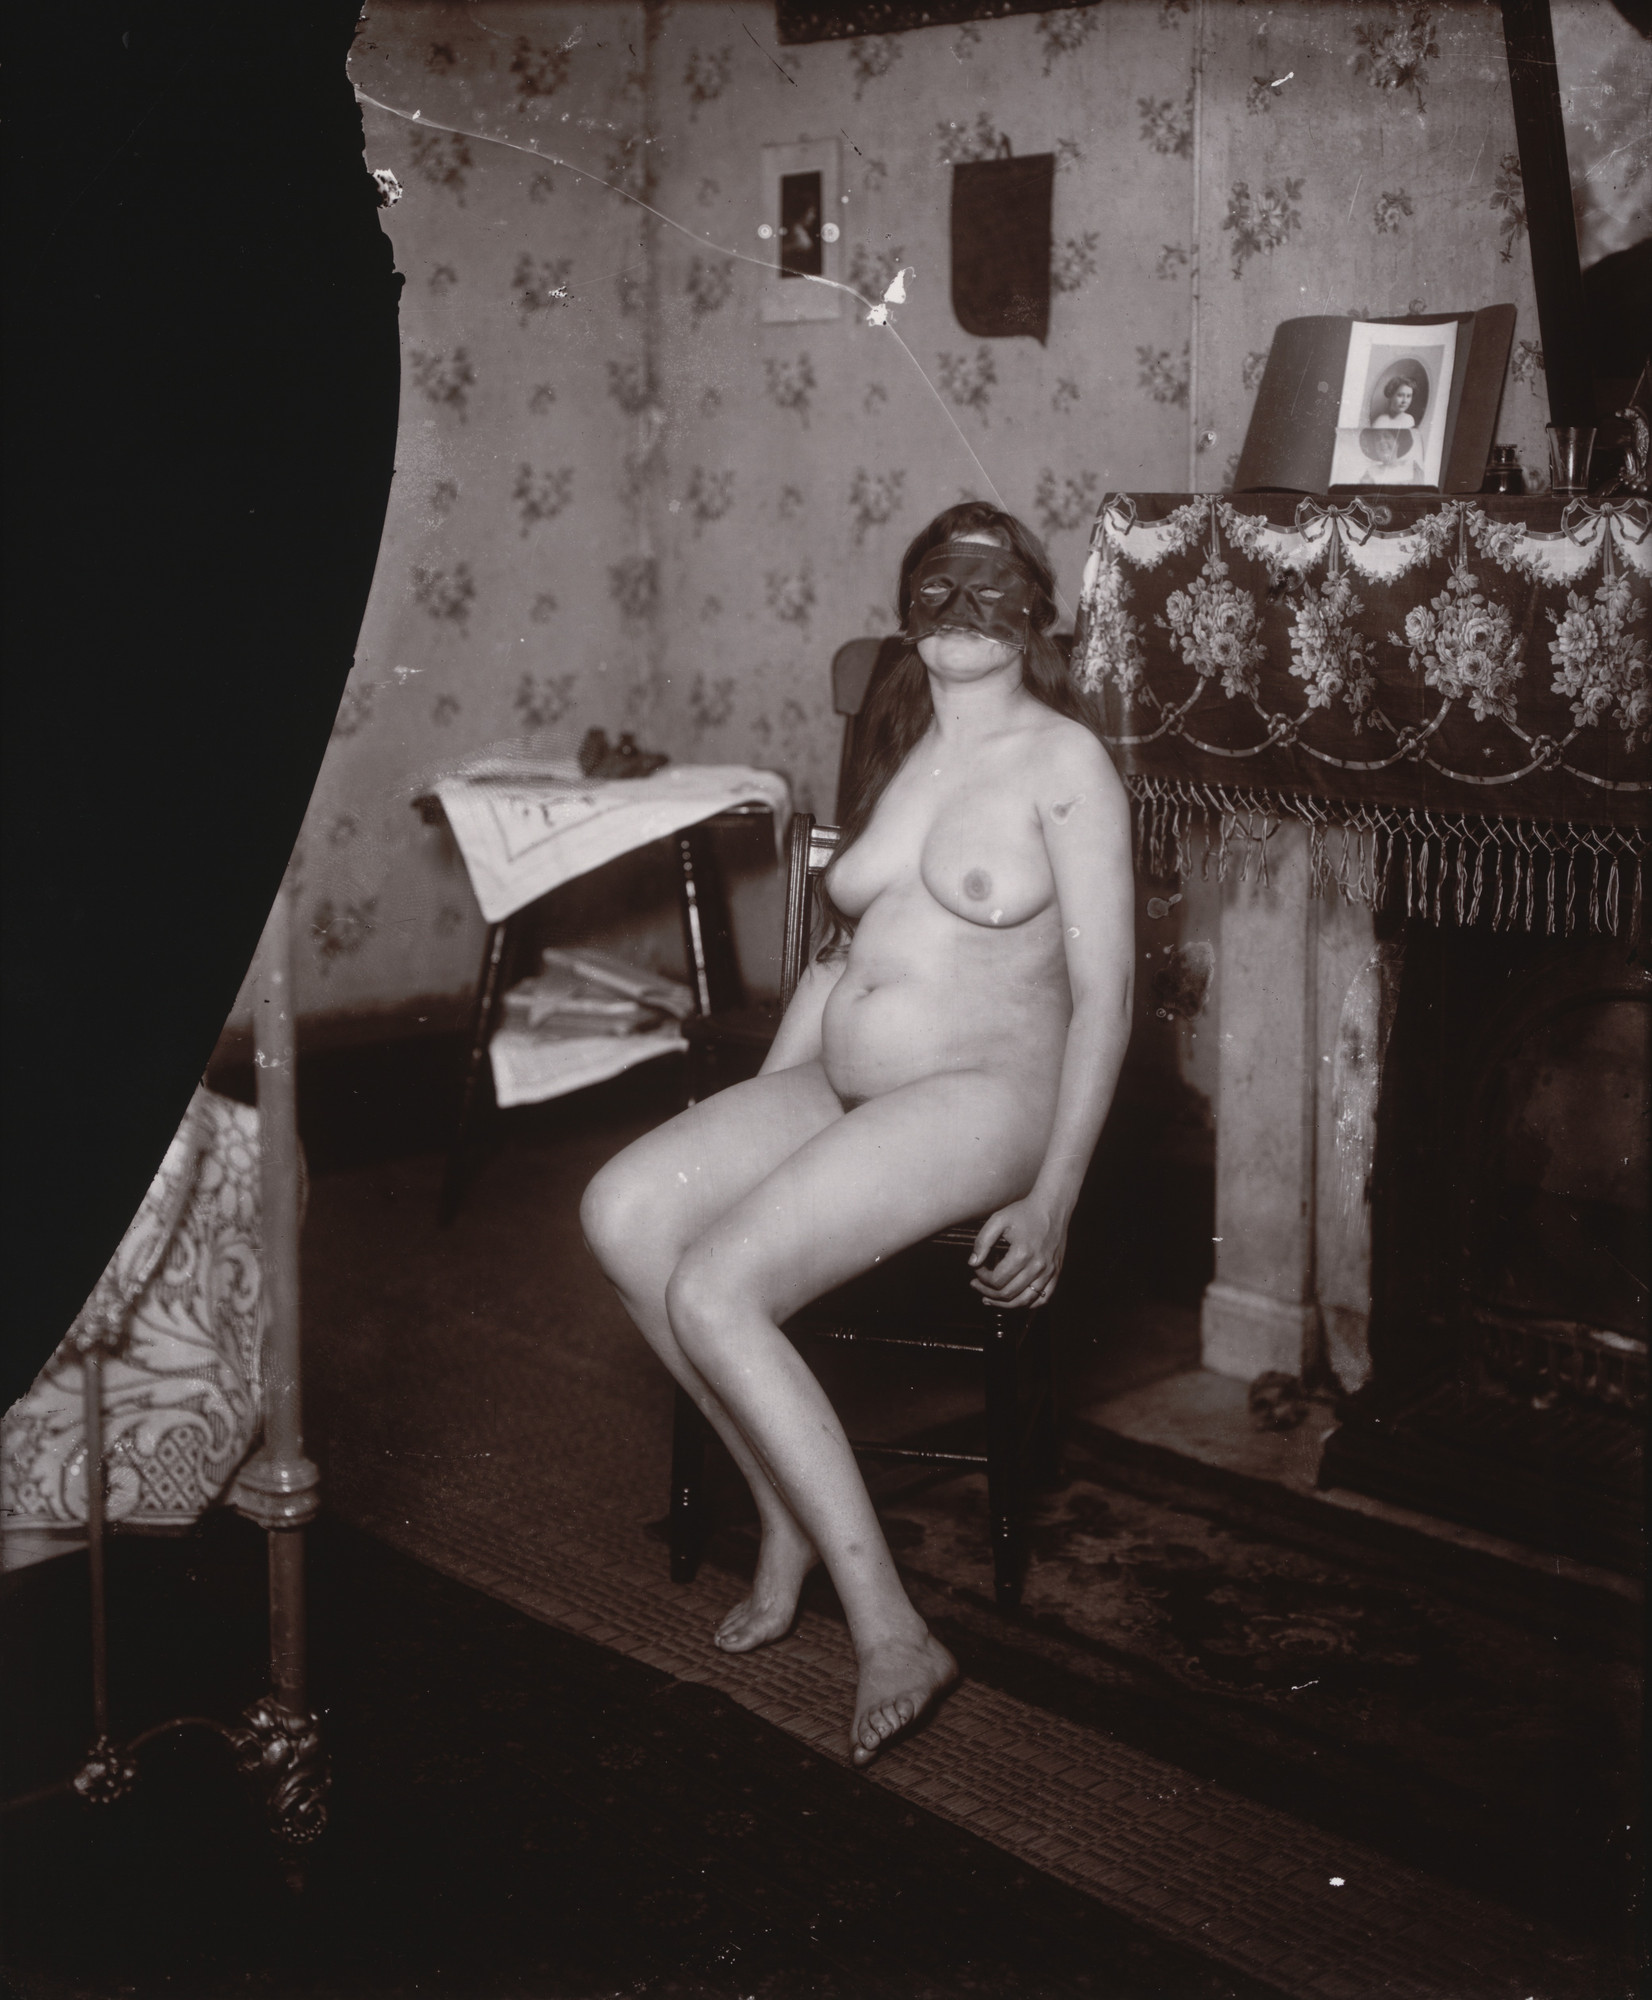 Ernest J. Bellocq. Untitled. c. 1912